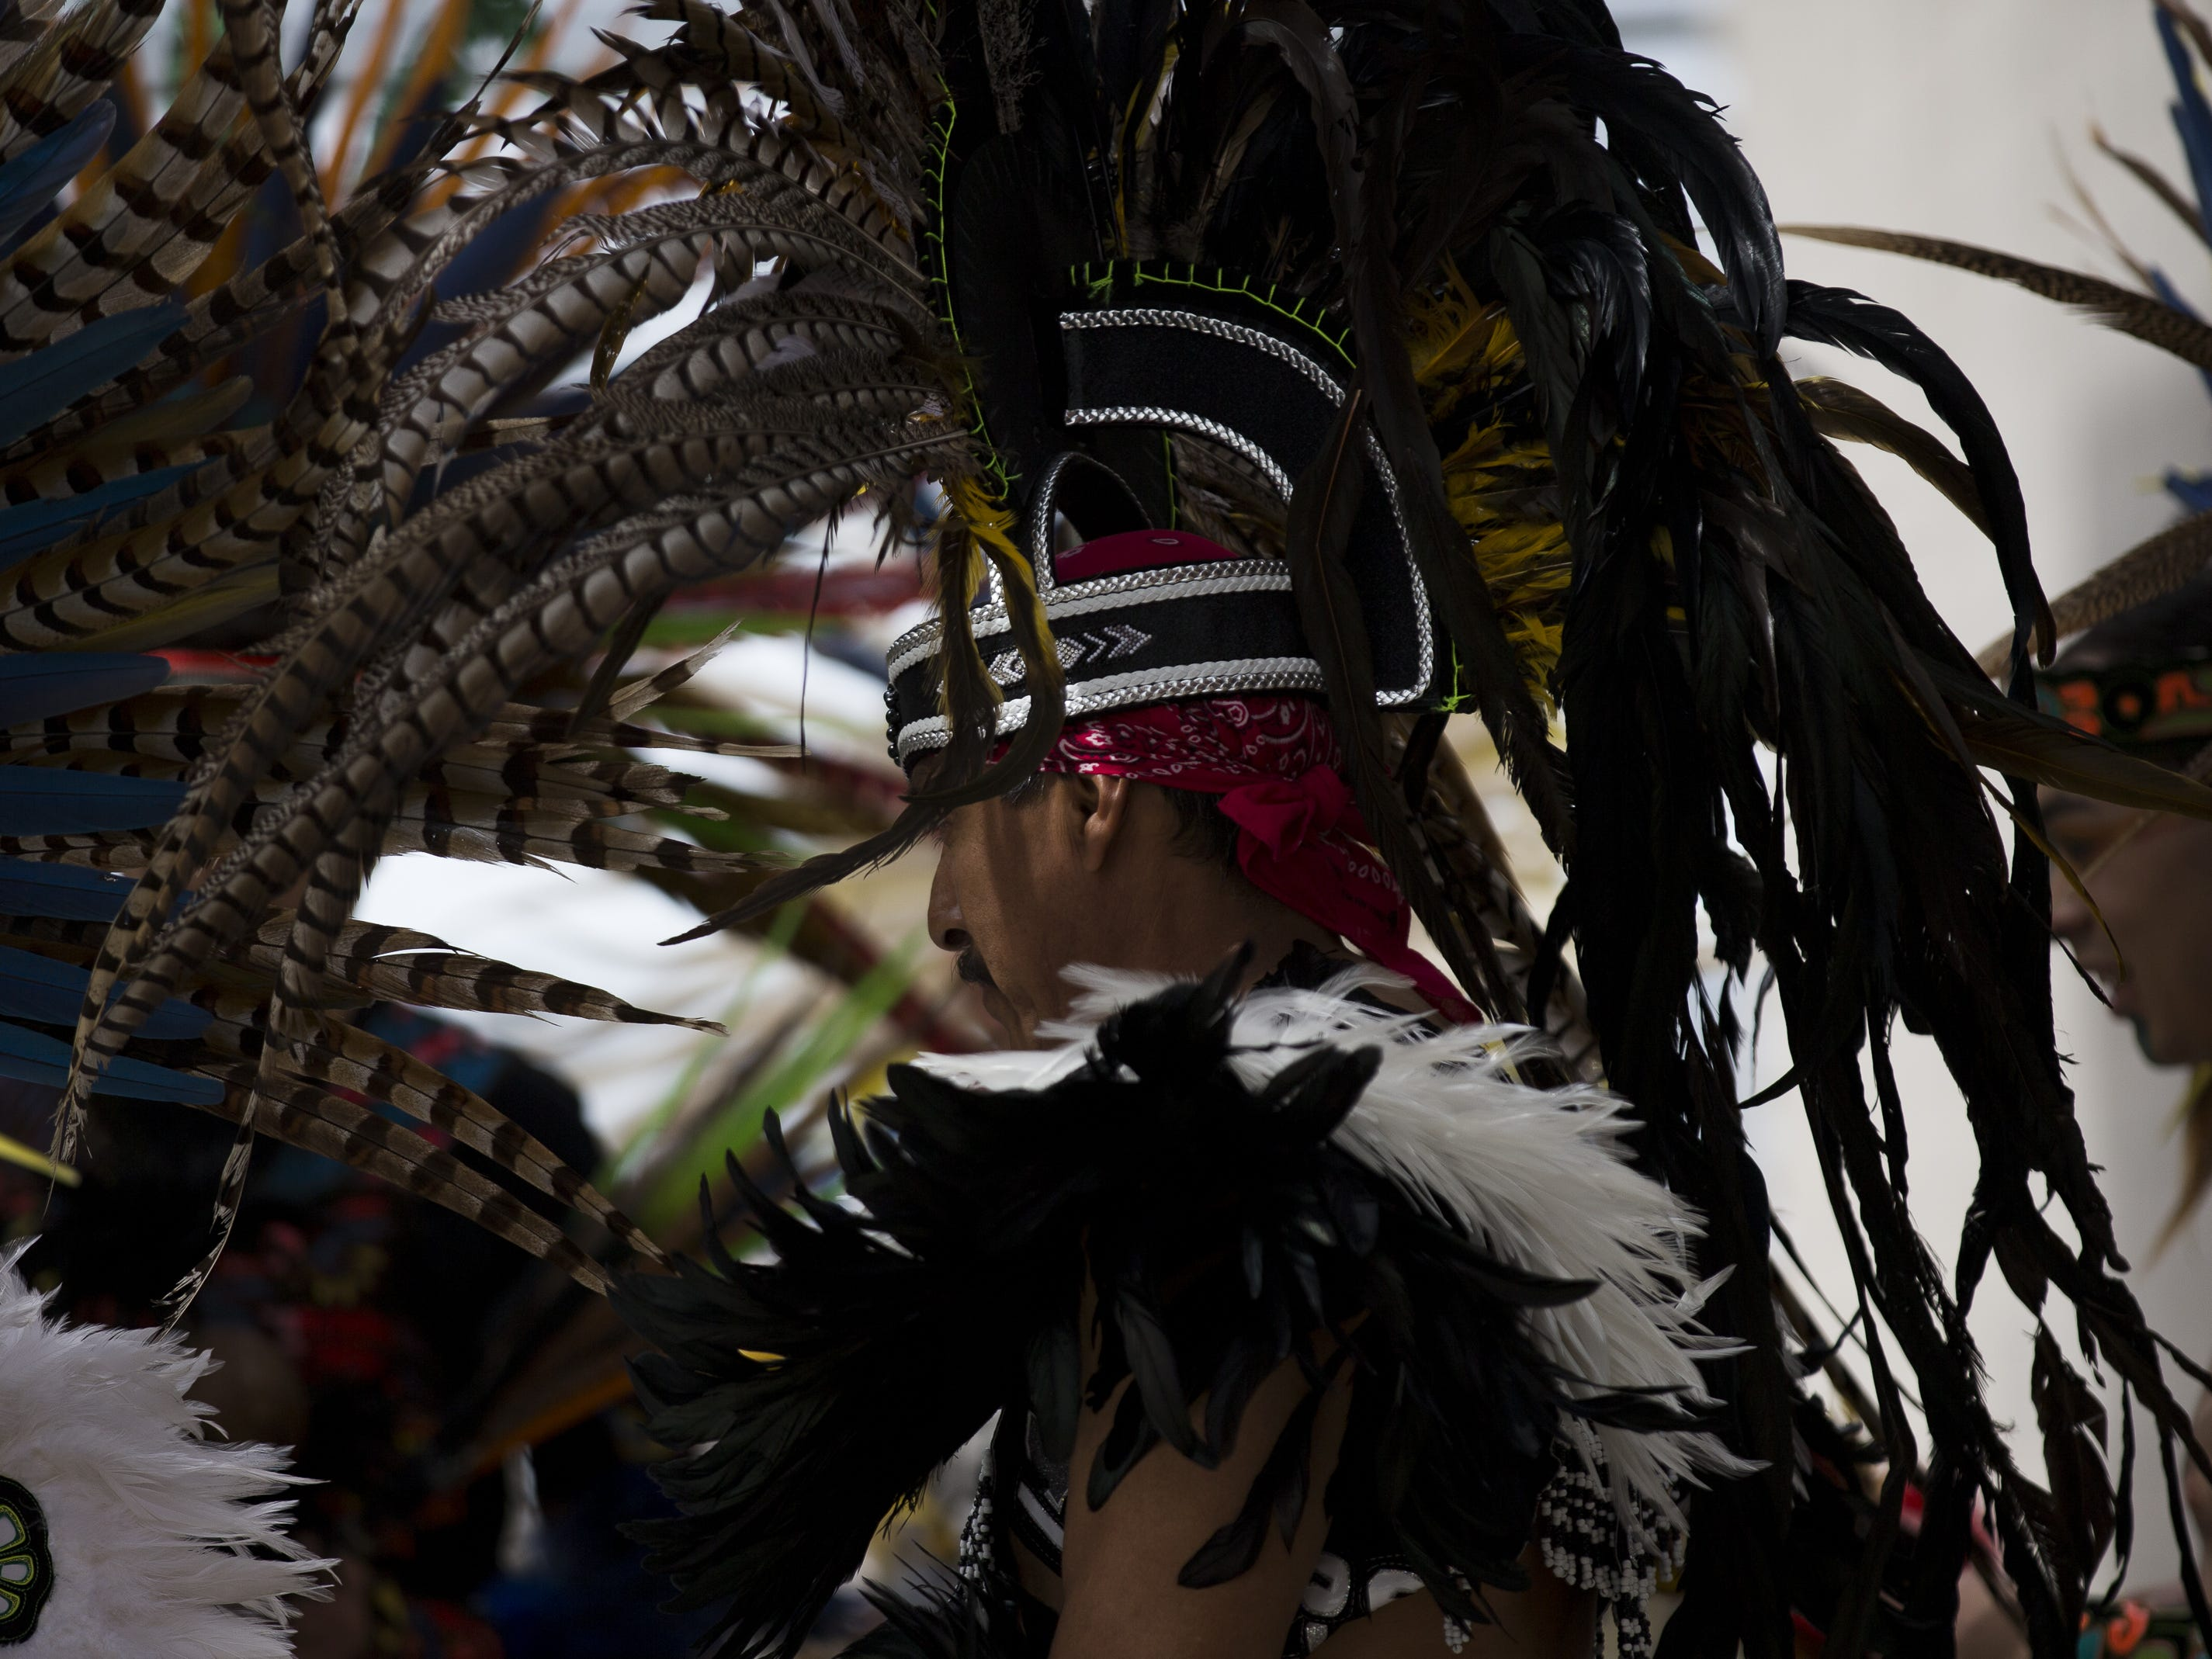 Members of an Aztec dance group prepare to perform at the Native Two Spirit Powwow at South Mountain Community College in Phoenix, Ariz. on Saturday, March 9, 2019. The powwow was the first of its kind in Arizona, featuring members who identified as two spirit, and members who did not, dancing together.